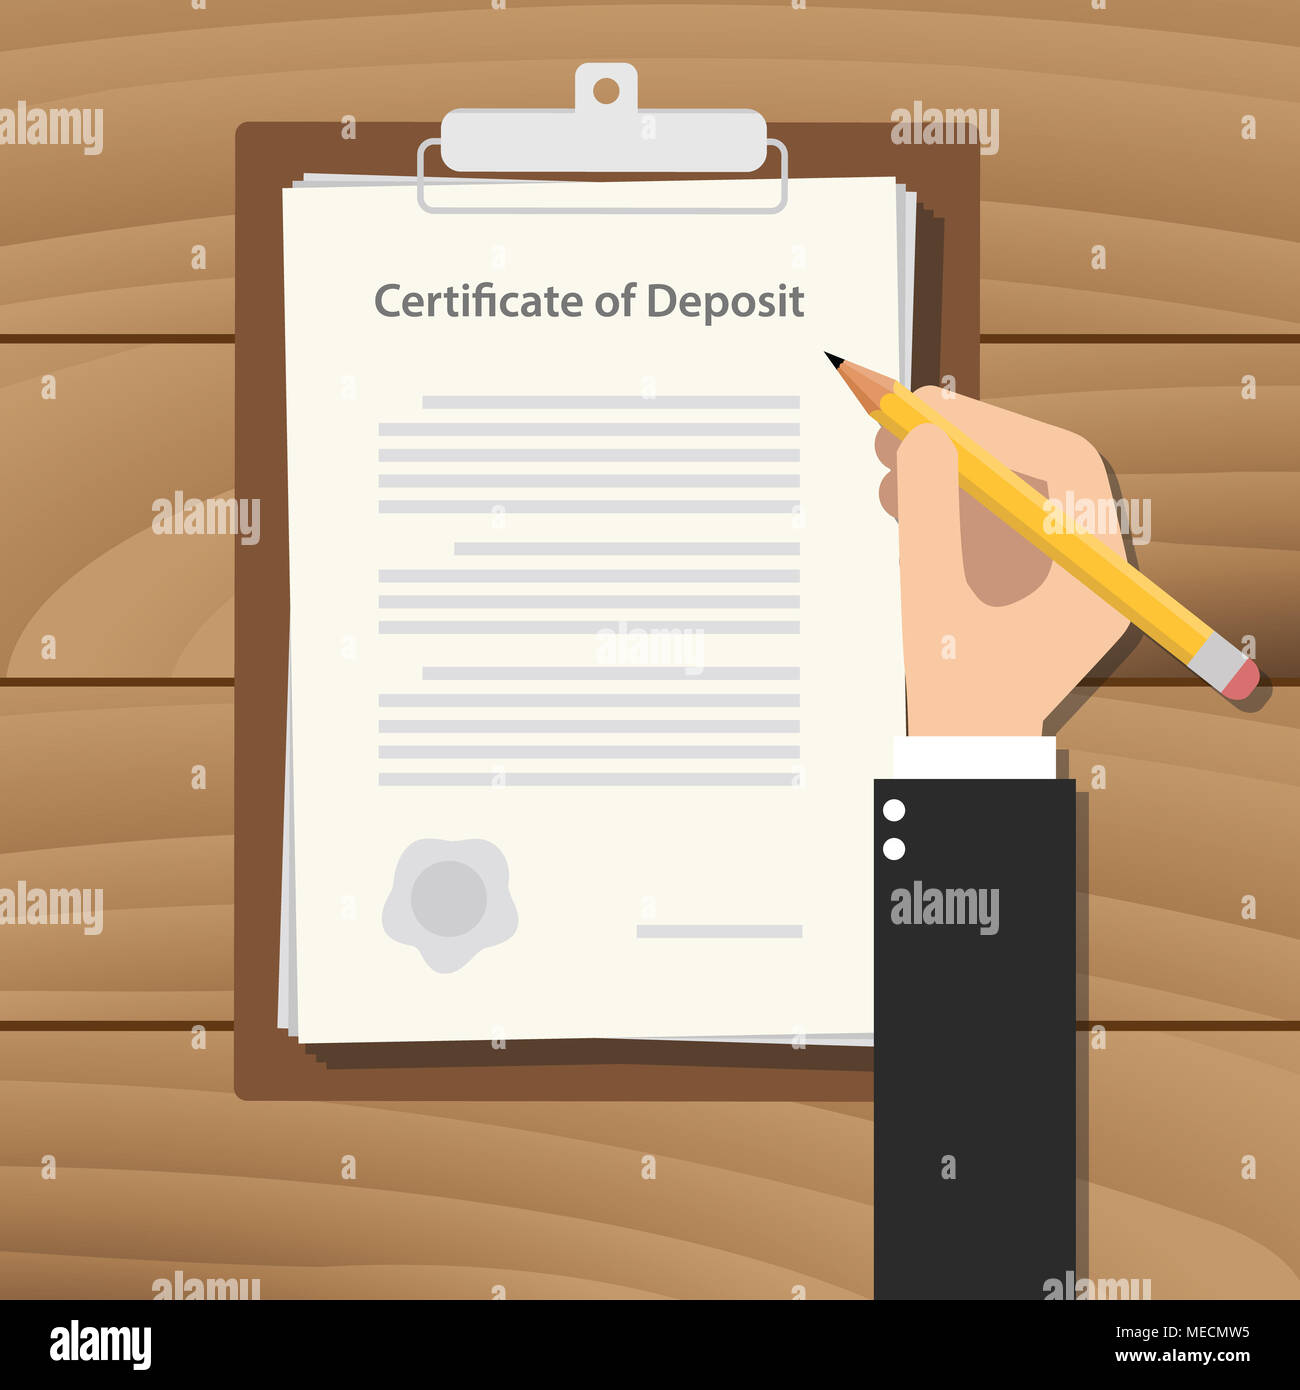 Certificate Of Deposit Illustration Concept With Hand Business Man